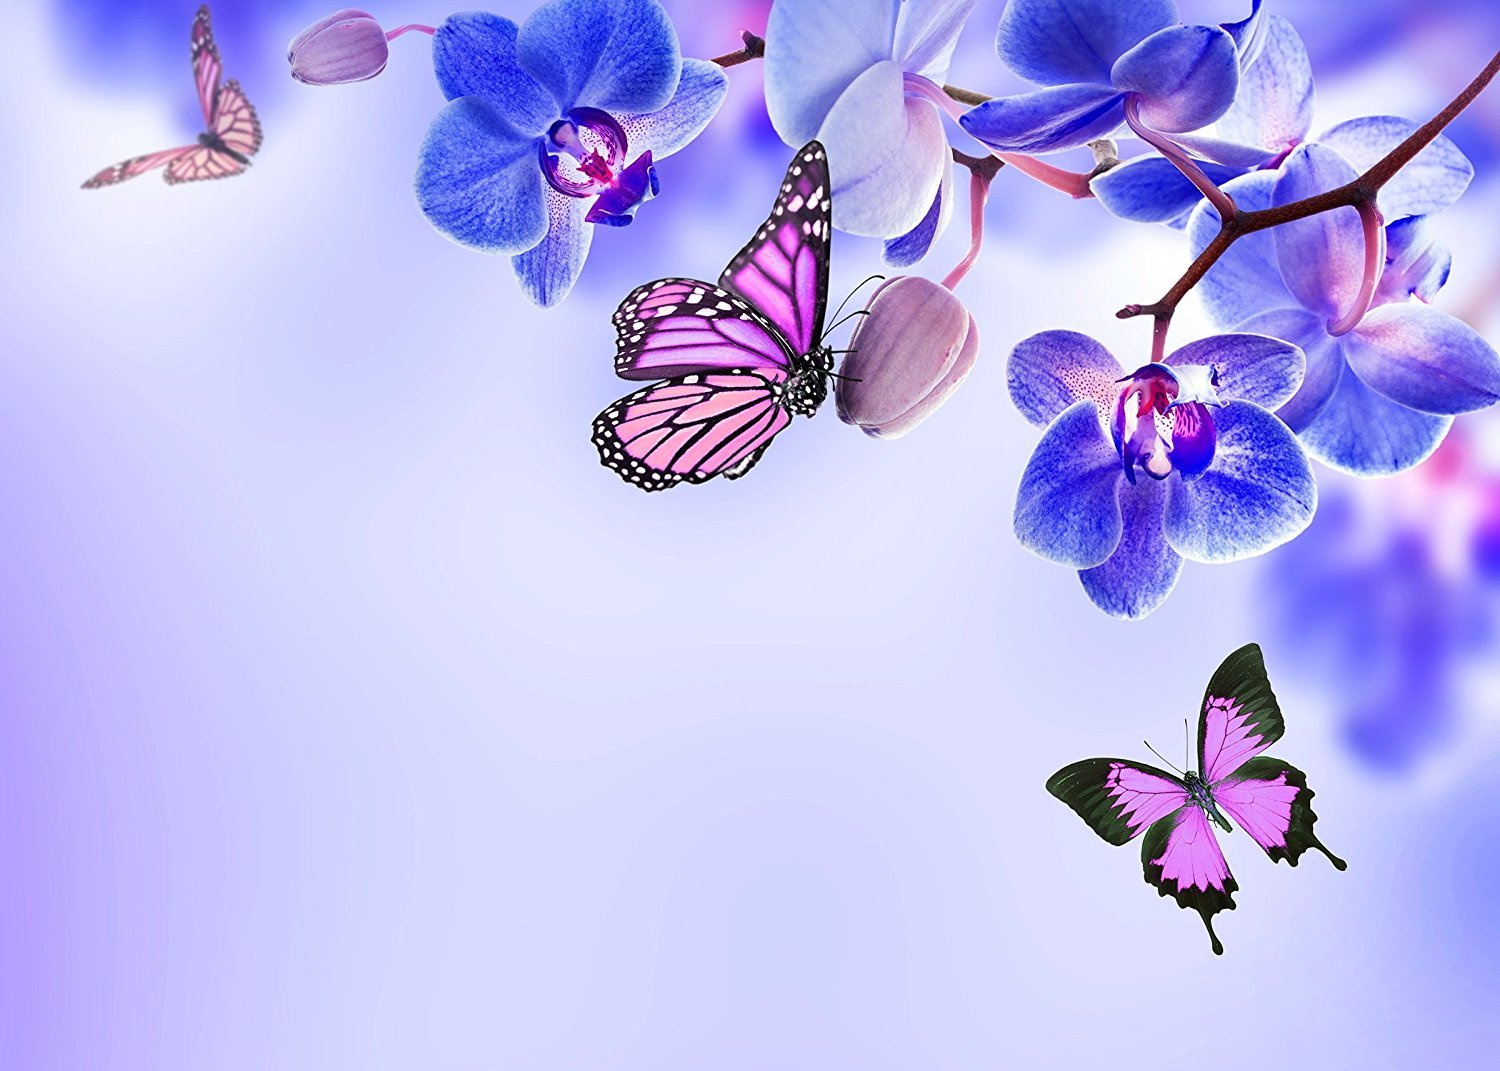 Fuermor Background 75 Ft Butterflies And Blue Flowers Lidia Butterfly Photography Backdrop Photo Props Room Mural Rq036 Camera